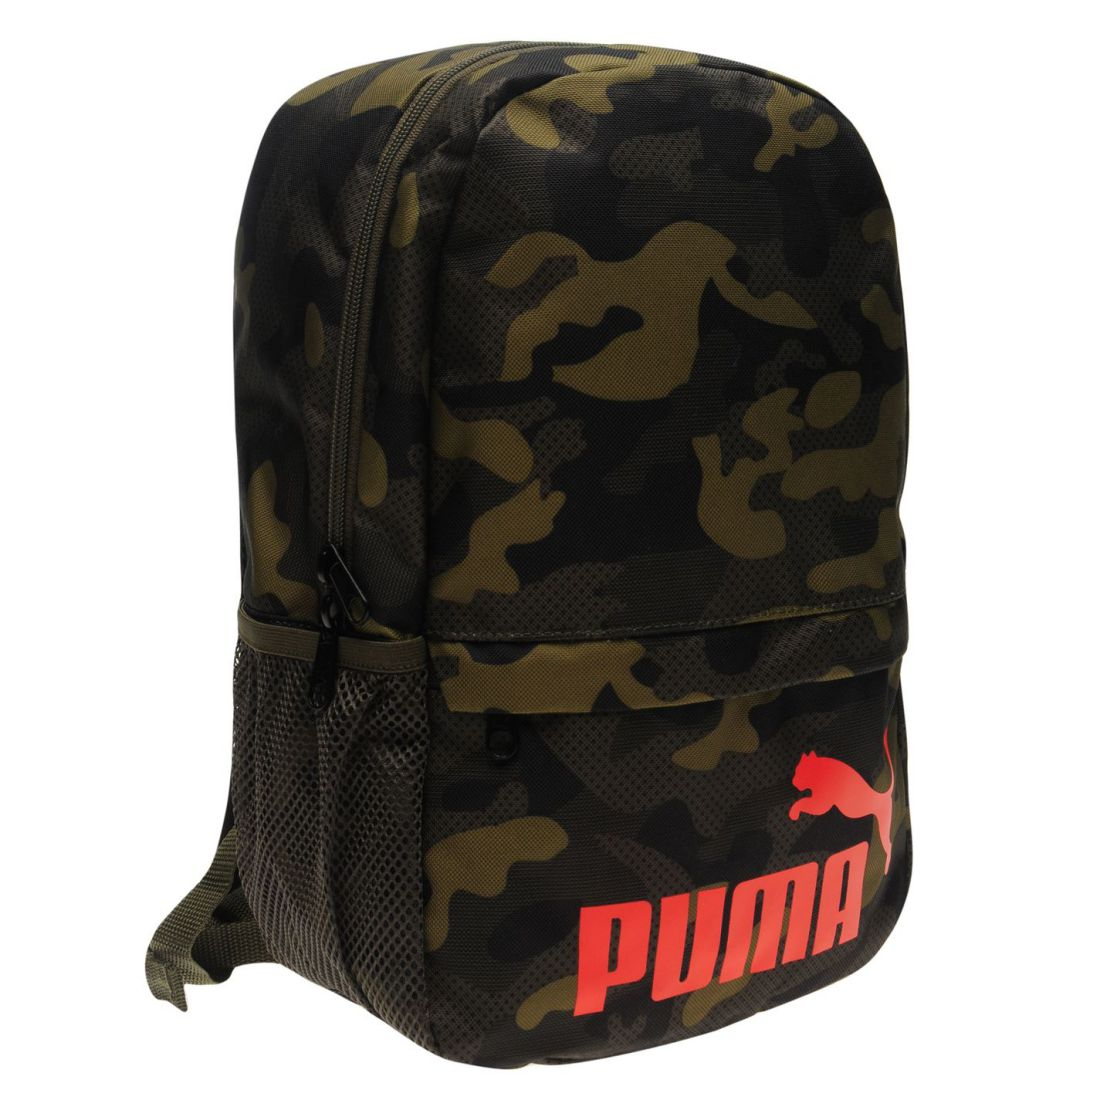 dad2897012 Details about Puma Unisex Mini Backpack Back Pack Zip Mesh Print